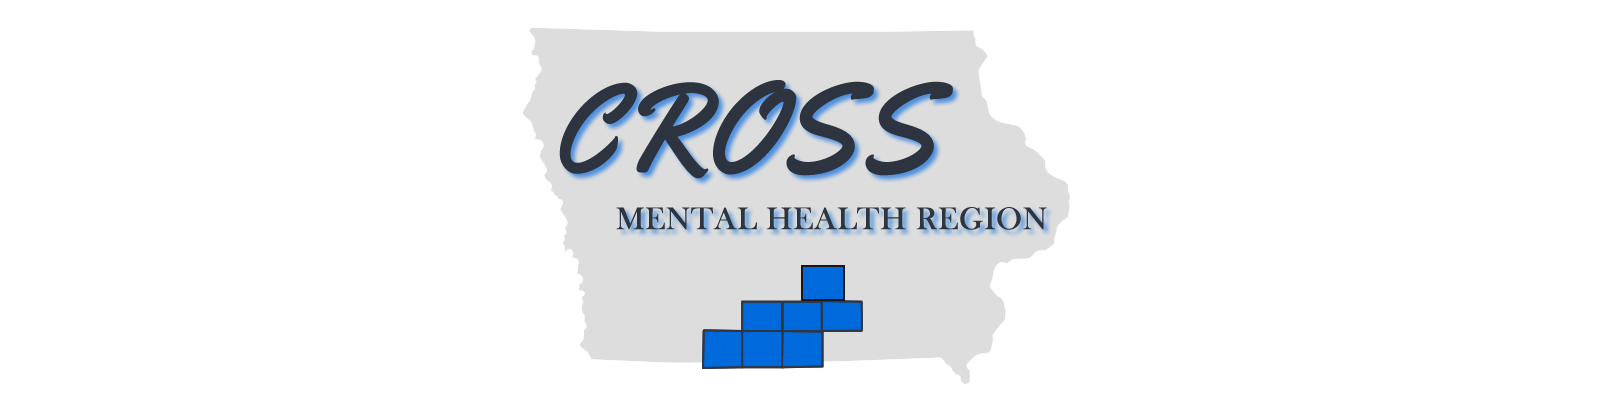 CROSS Mental Health Region